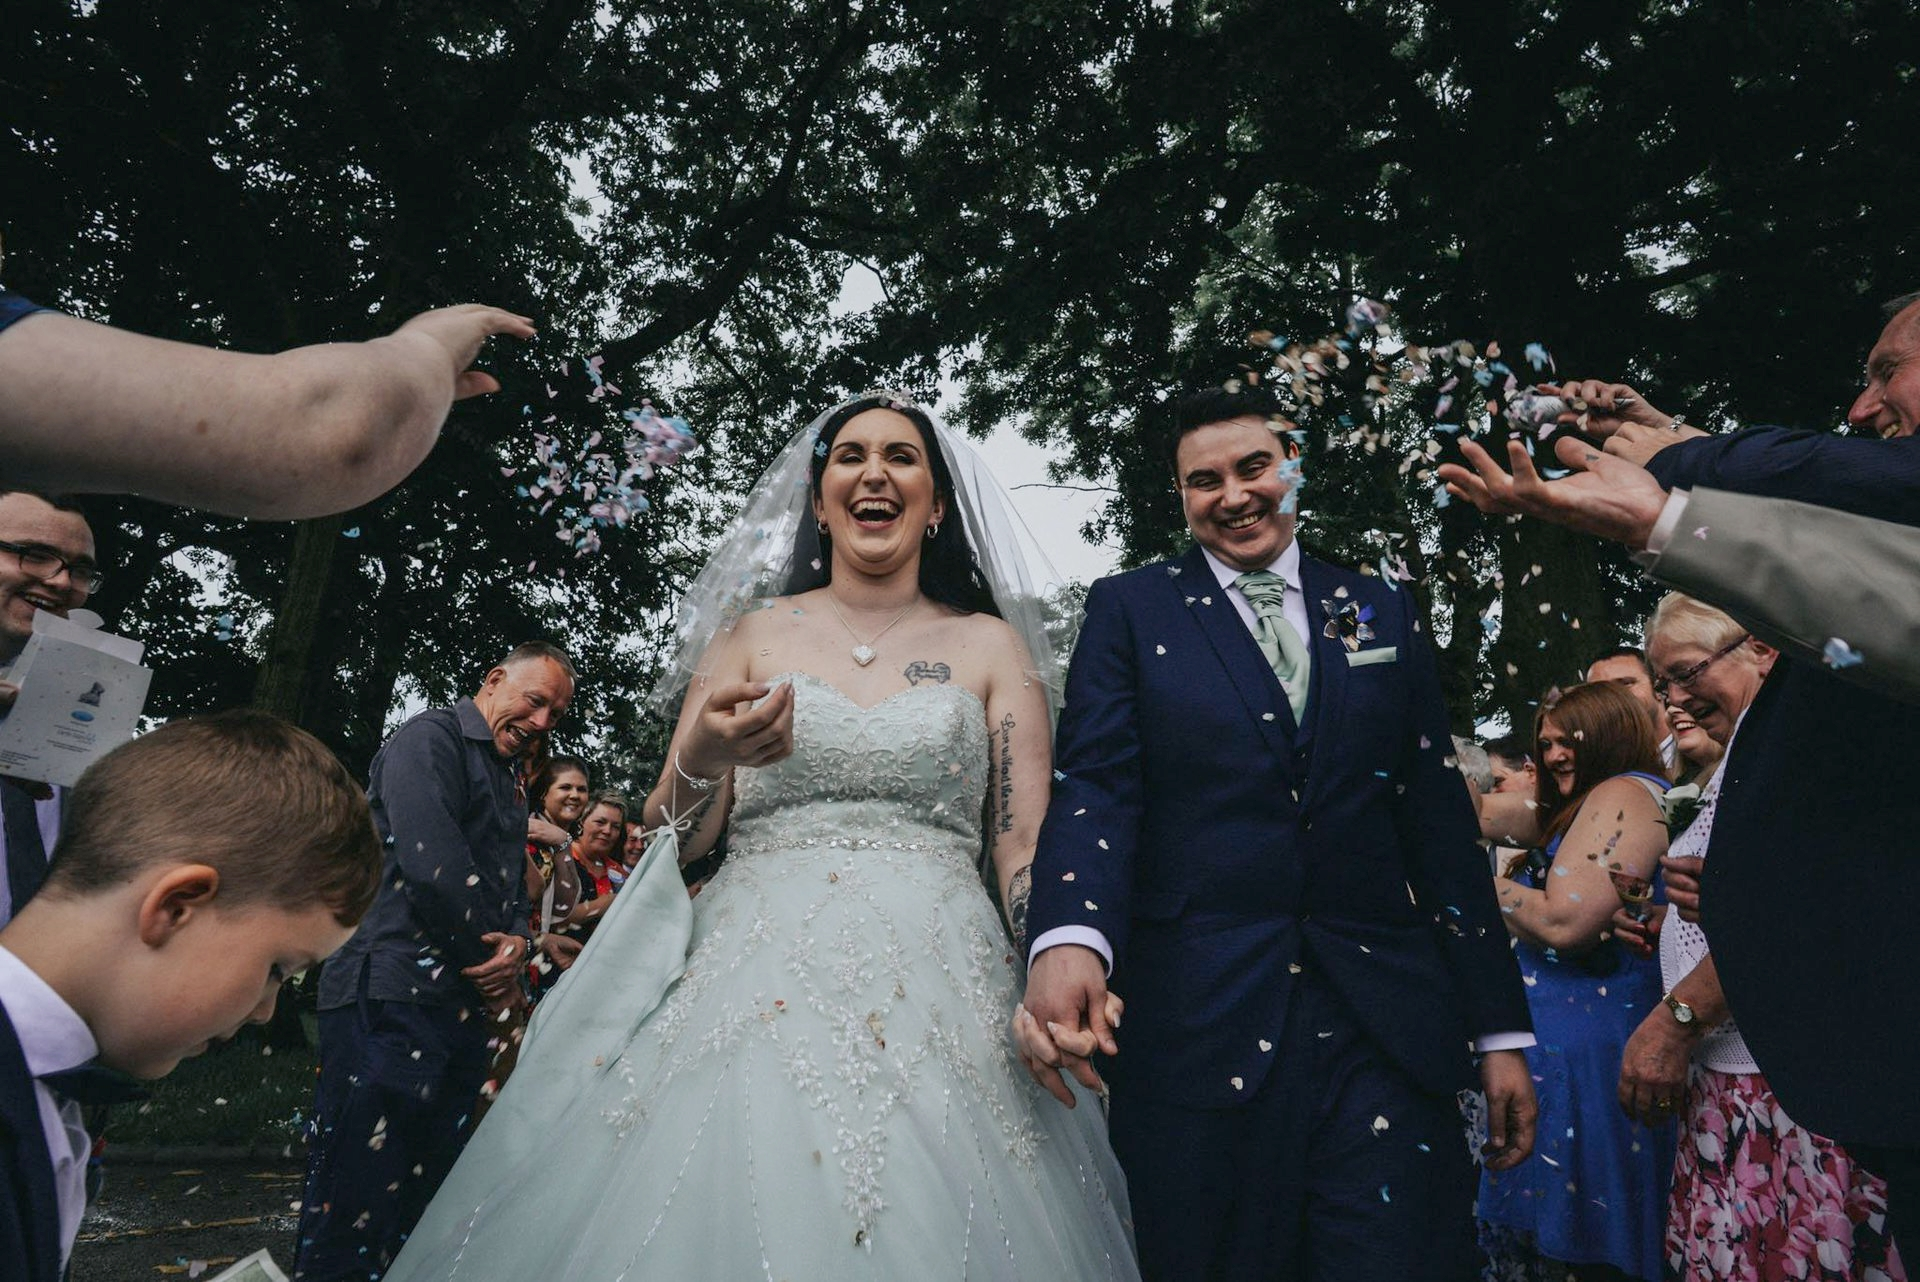 bride and groom laugh hysterically during their confetti images for their superhero wedding in Manchester - Manchester wedding photographer